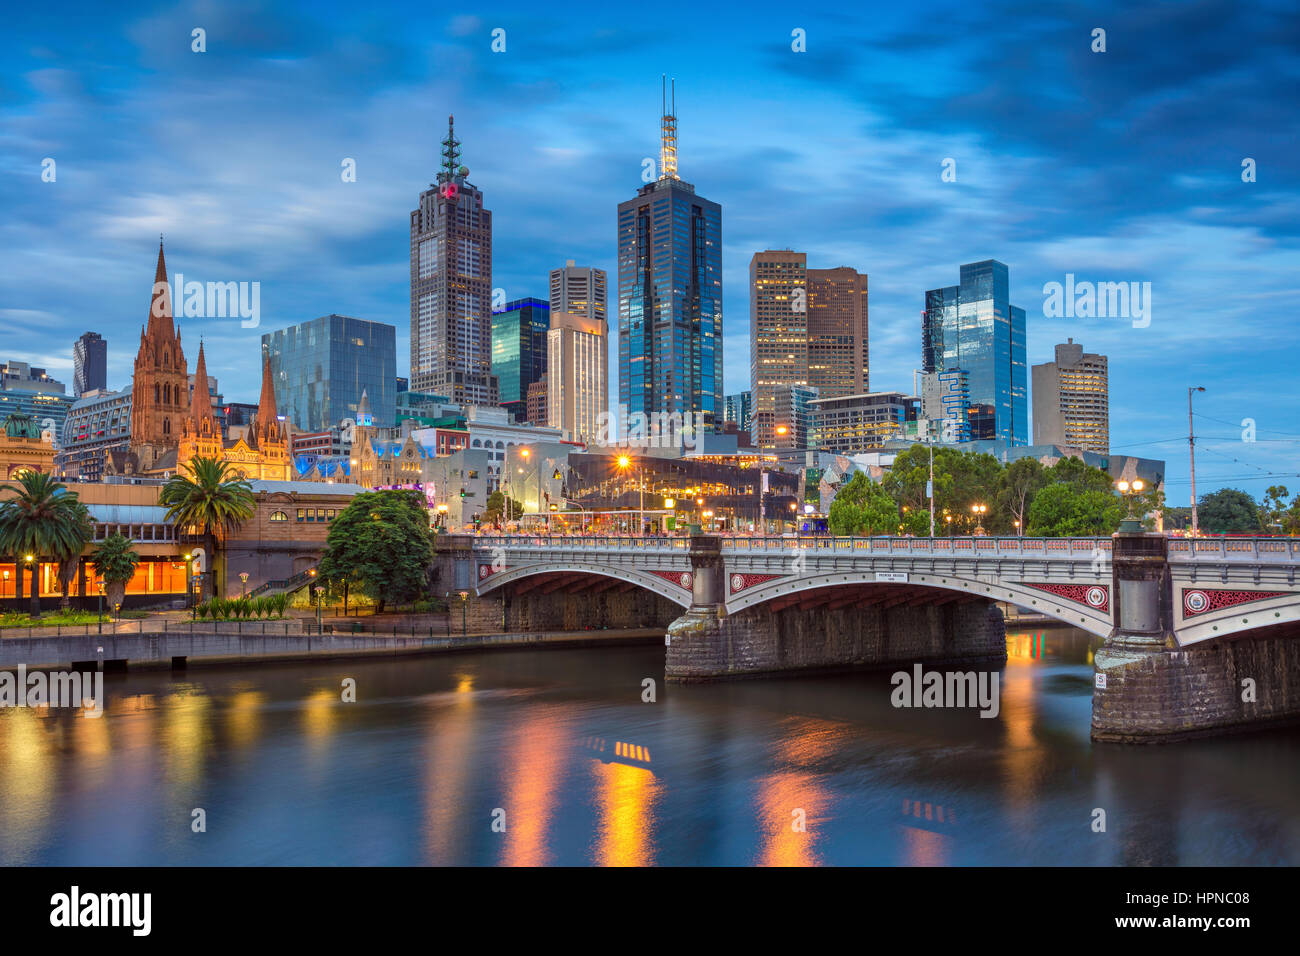 City of Melbourne. Cityscape image of Melbourne, Australia during twilight blue hour. - Stock Image